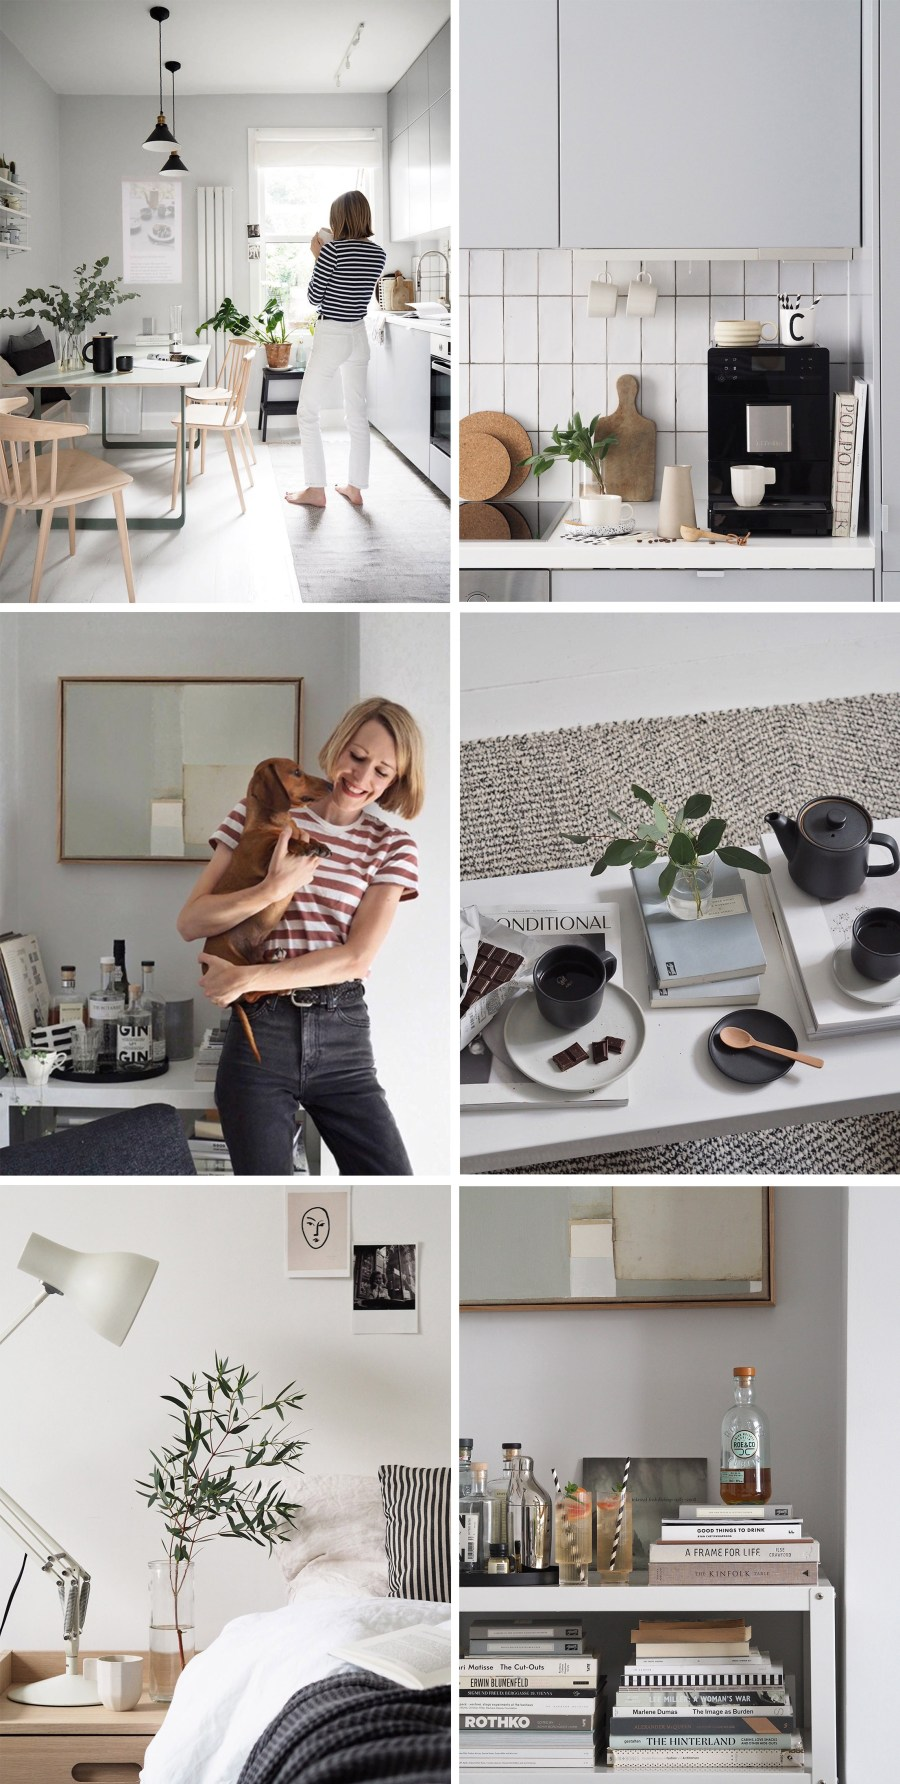 Cate st hill uk interiors blogger simple interior design